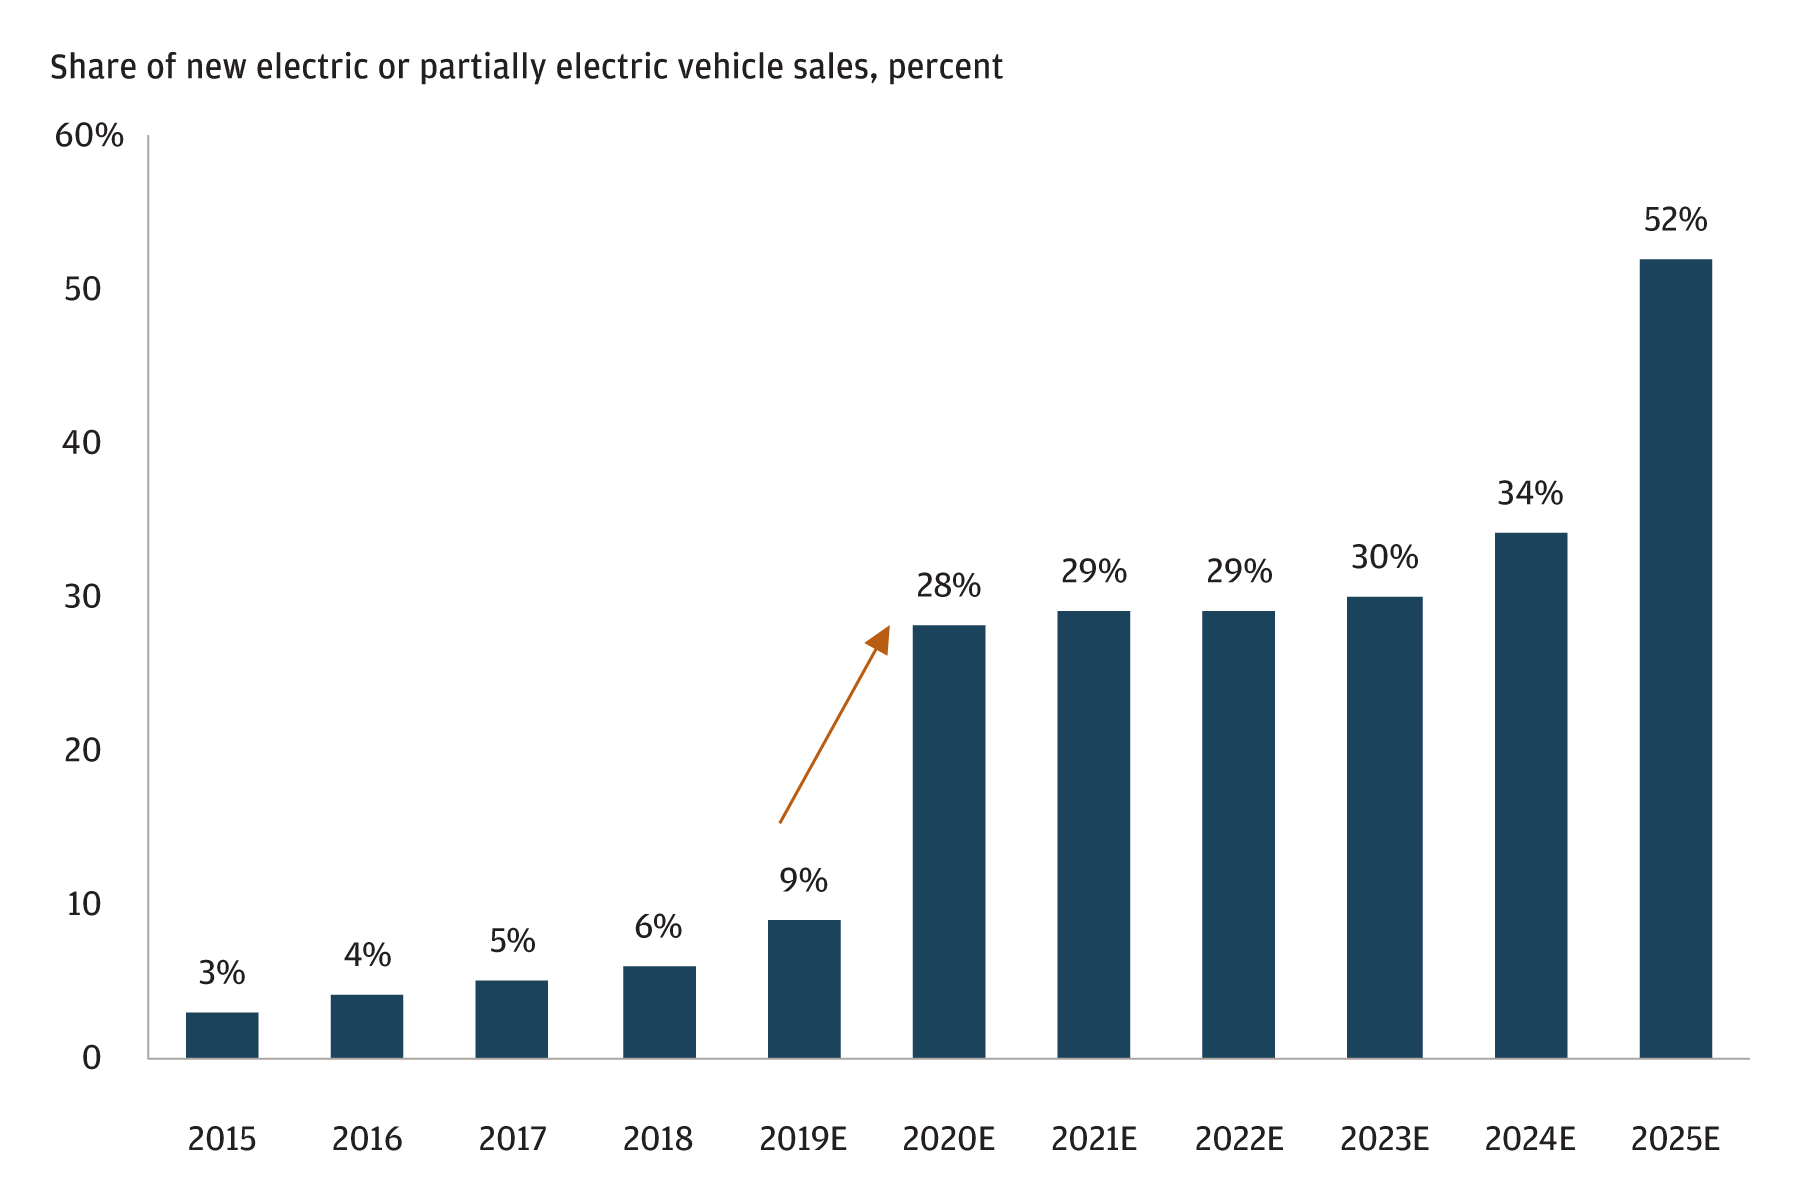 European EV adoption rate is set to climb